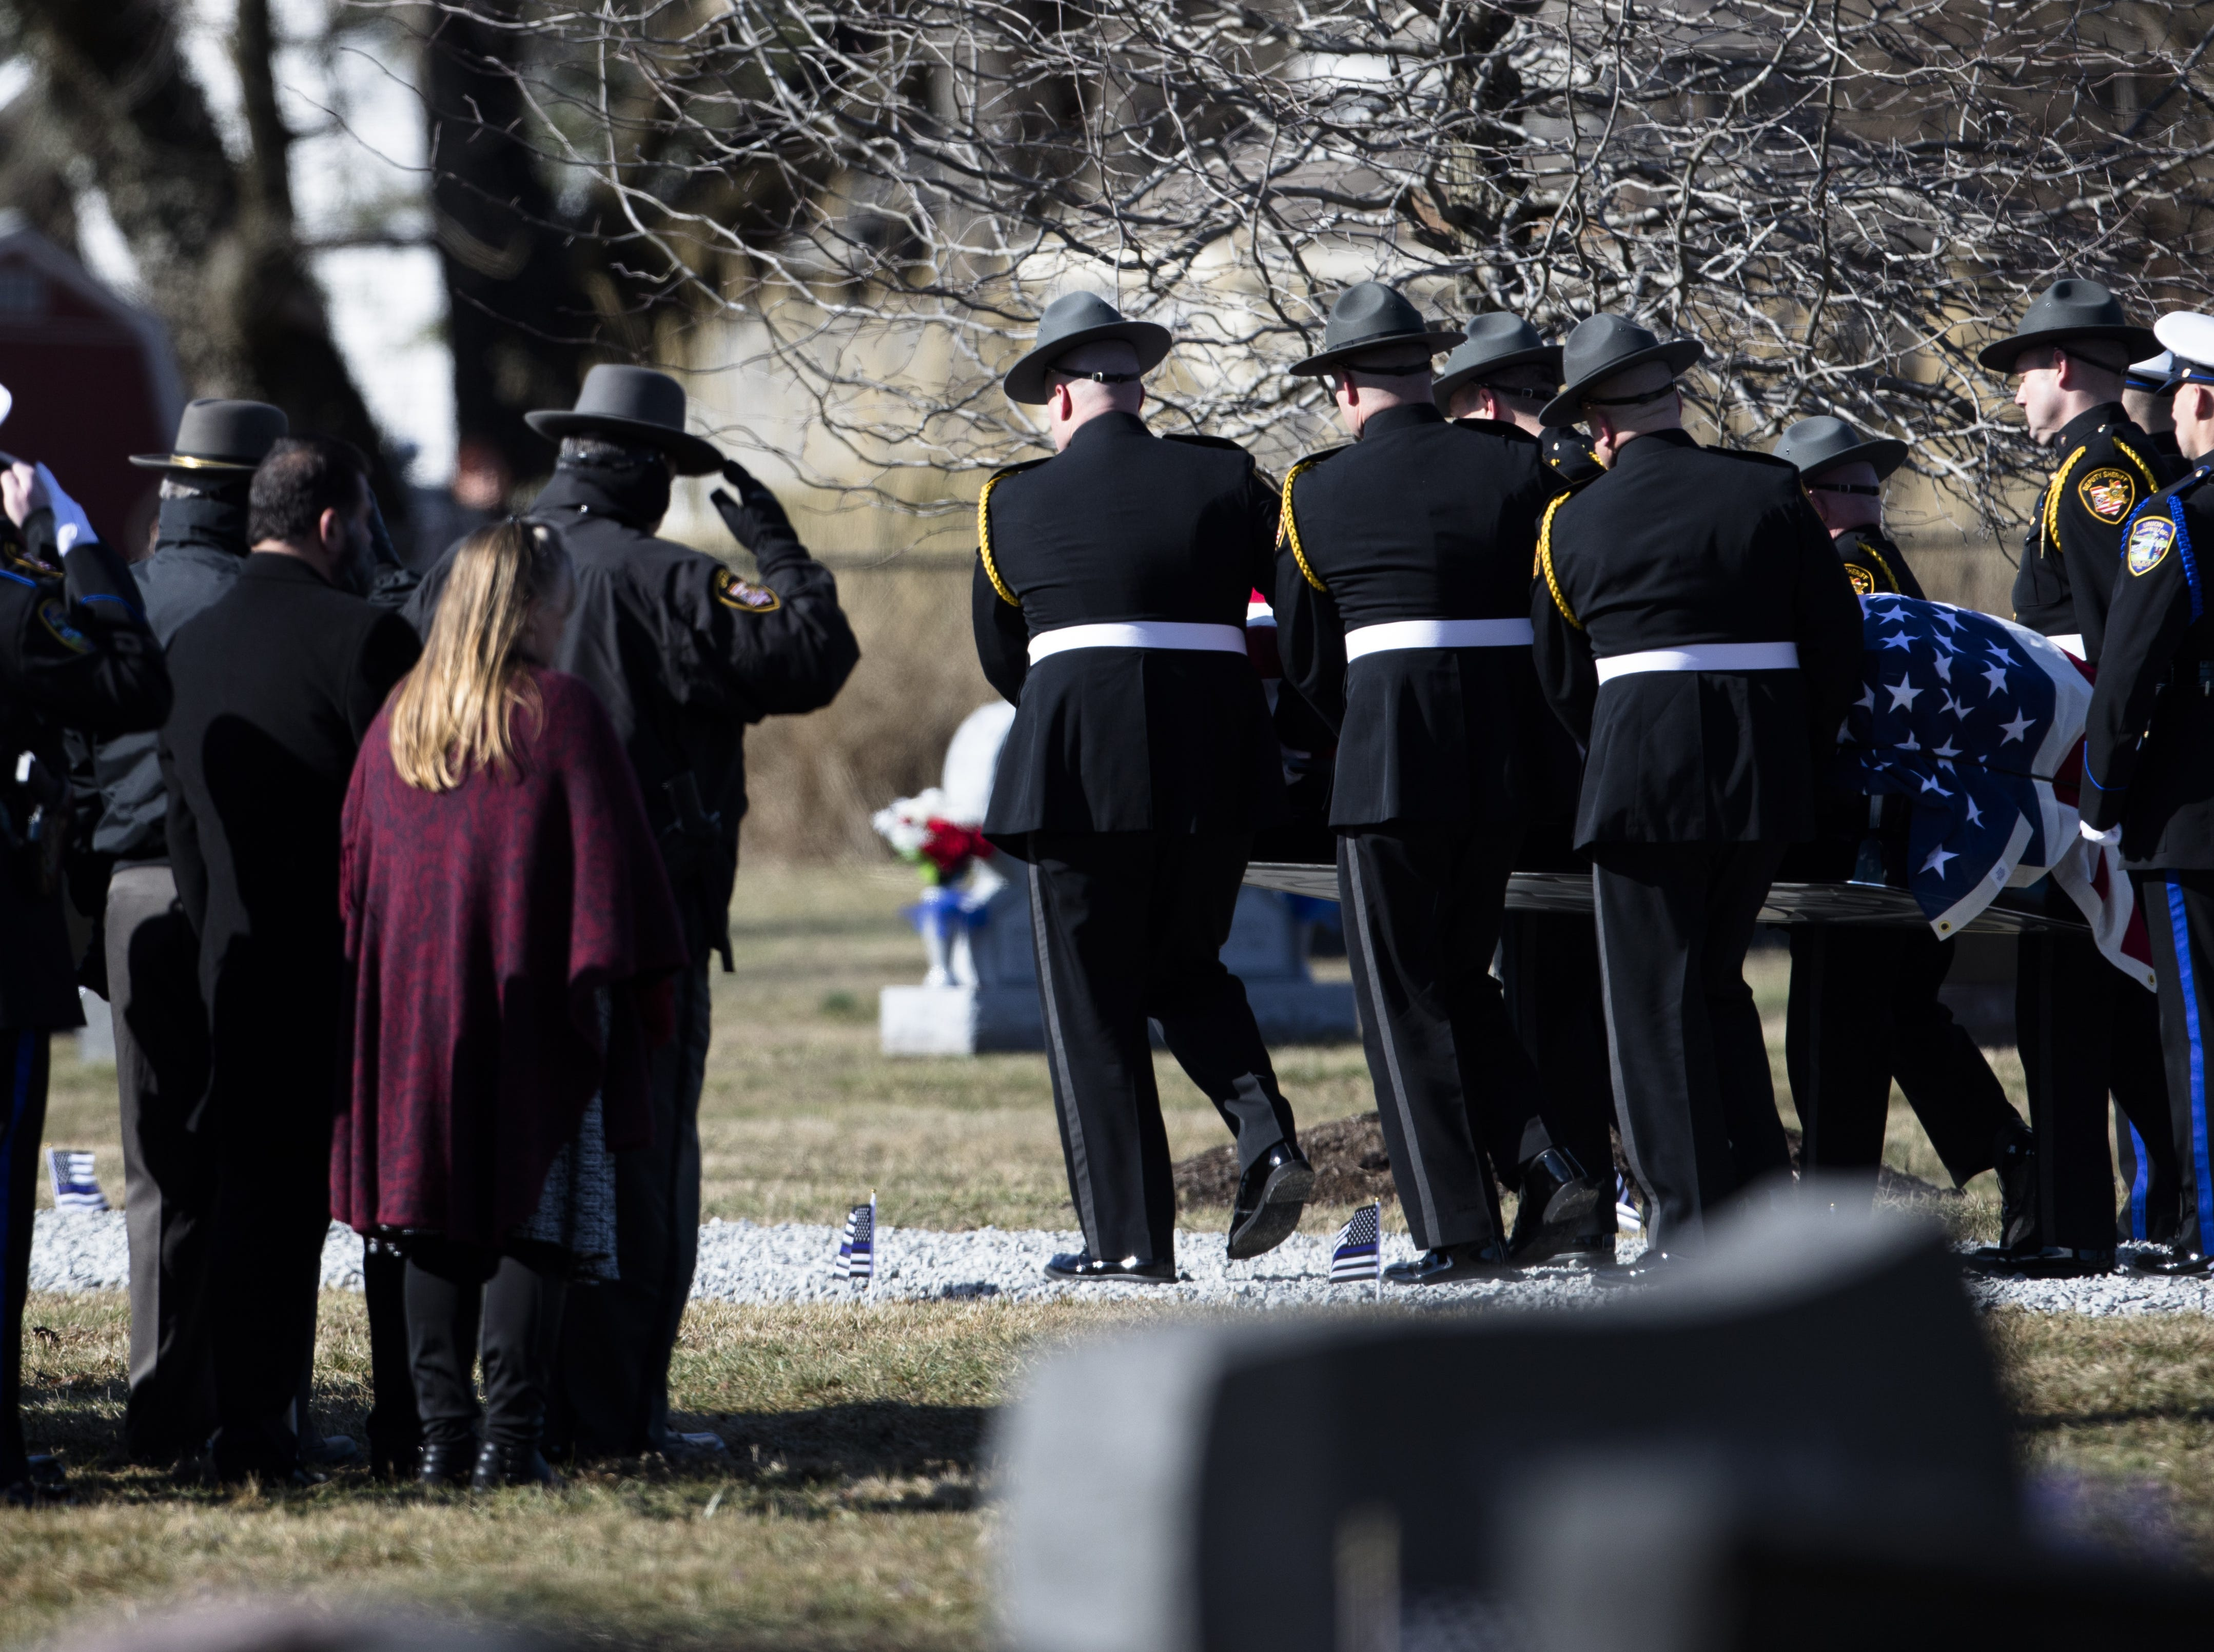 Pallbearers carry the casket bearing Detective Bill Brewer, a 20-year veteran of the Clermont County Sheriff's Office, is processed through Pierce Township Cemetery in a Caisson on Friday, Feb. 8, 2019, at in Cincinnati. Brewer, 42, of Pierce Township, died in the line of duty. He was shot Feb. 2 during a standoff. Deputy Brewer is survived by a wife and 5-year-old son.